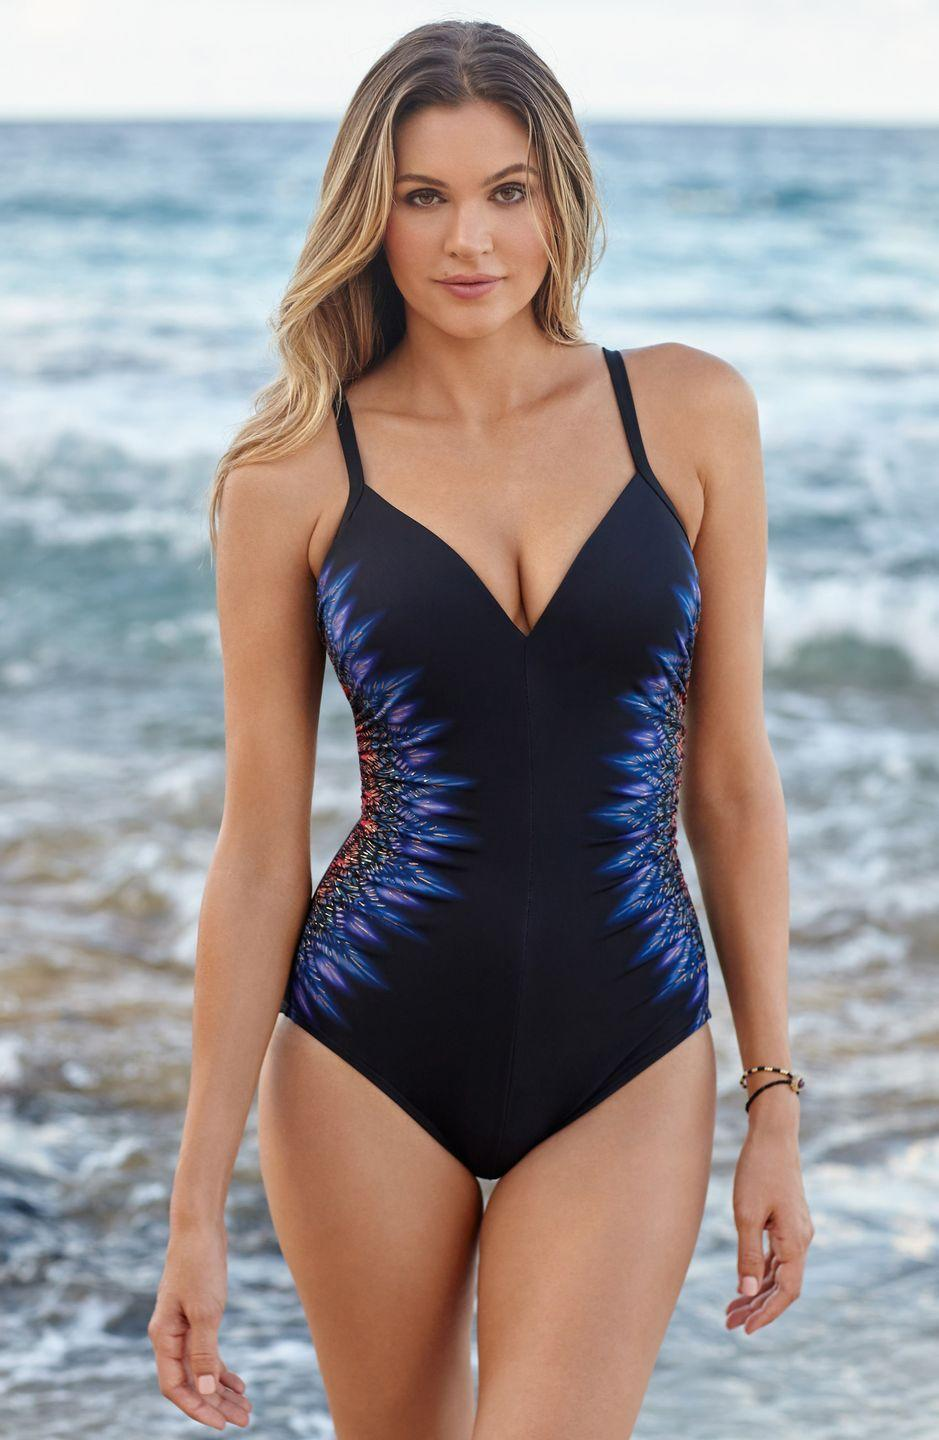 """<p>Miraclesuit's tagline is """"Look 10 pounds lighter in 10 seconds."""" Constructed with special slimming materials, the brand's collection of one pieces, tankini tops and high-waisted bottoms are all designed to flatter and sculpt curves, while still being comfortable for all your water-based activities.</p><p><a class=""""link rapid-noclick-resp"""" href=""""https://go.redirectingat.com?id=74968X1596630&url=https%3A%2F%2Fwww.nordstrom.com%2Fbrands%2Fmiraclesuit--503%3Forigin%3DproductBrandLink&sref=https%3A%2F%2Fwww.oprahdaily.com%2Fstyle%2Fg27391962%2Fbest-swimwear-brands%2F"""" rel=""""nofollow noopener"""" target=""""_blank"""" data-ylk=""""slk:SHOP NOW"""">SHOP NOW</a></p>"""